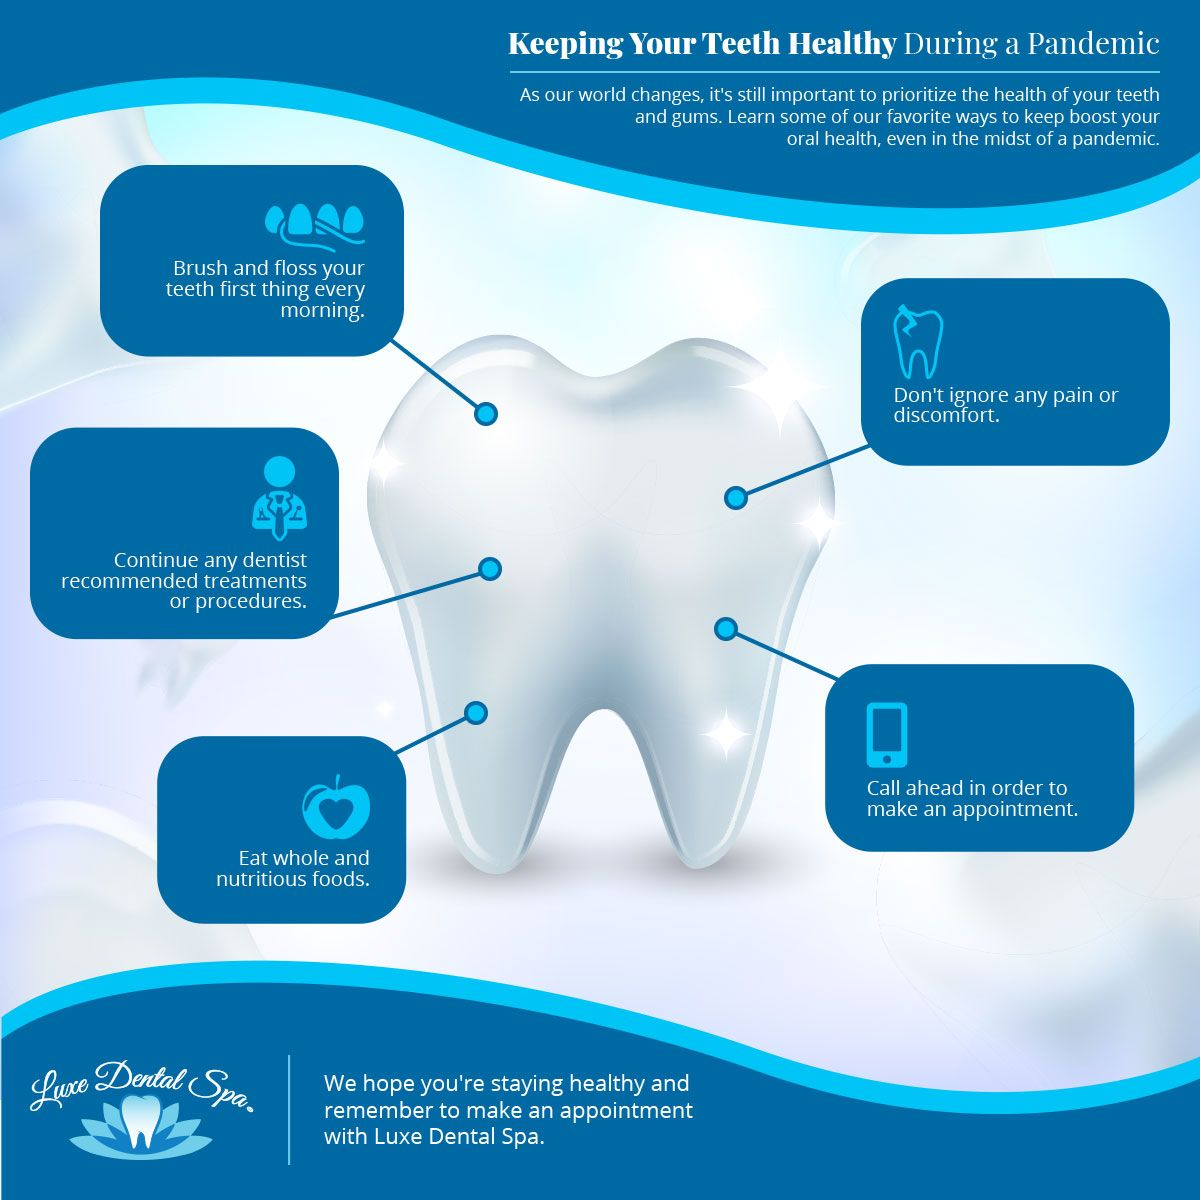 Keeping-Your-Teeth-Healthy-During-a-Pandemic-Infographic-5f4d953523580.jpg